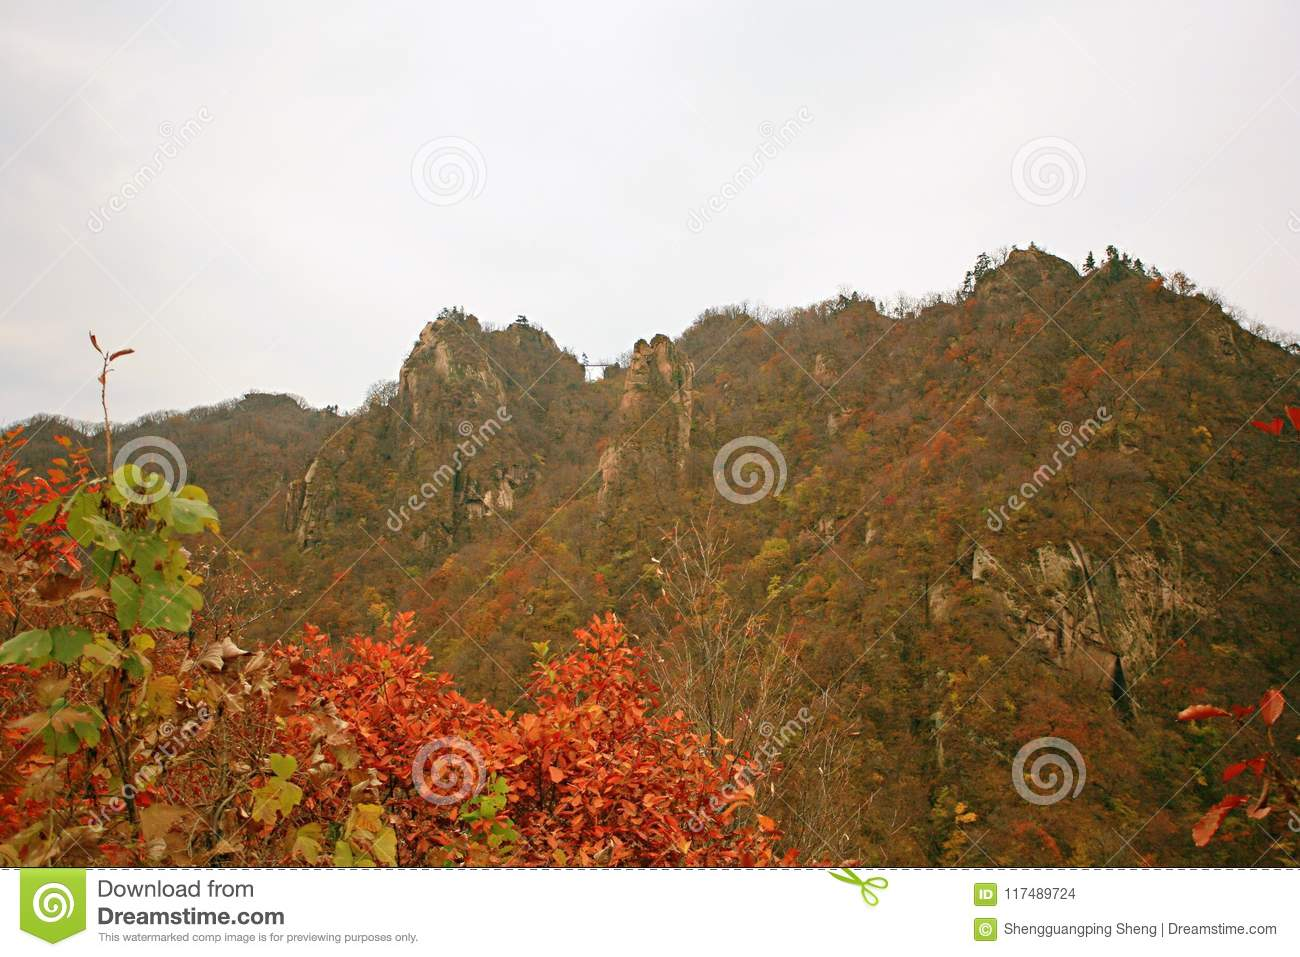 Taishan occidental, Ruyang